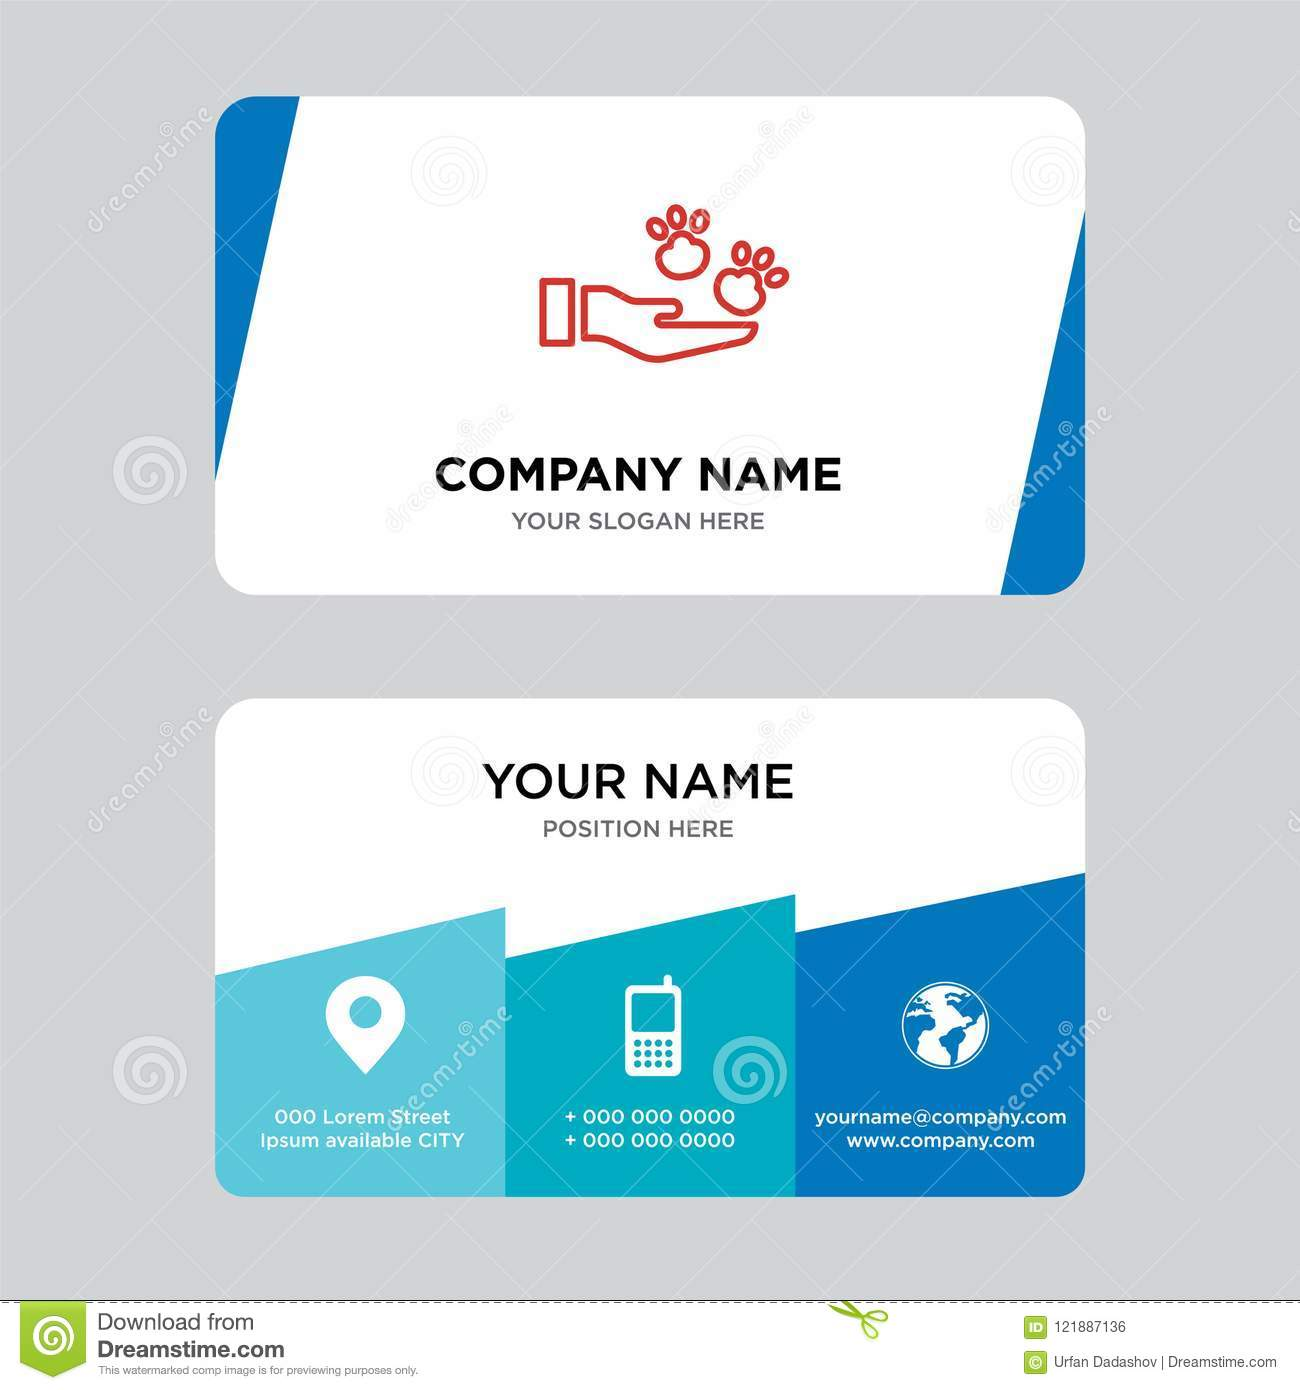 Pet Care Business Card Design Template Visiting For Your Company